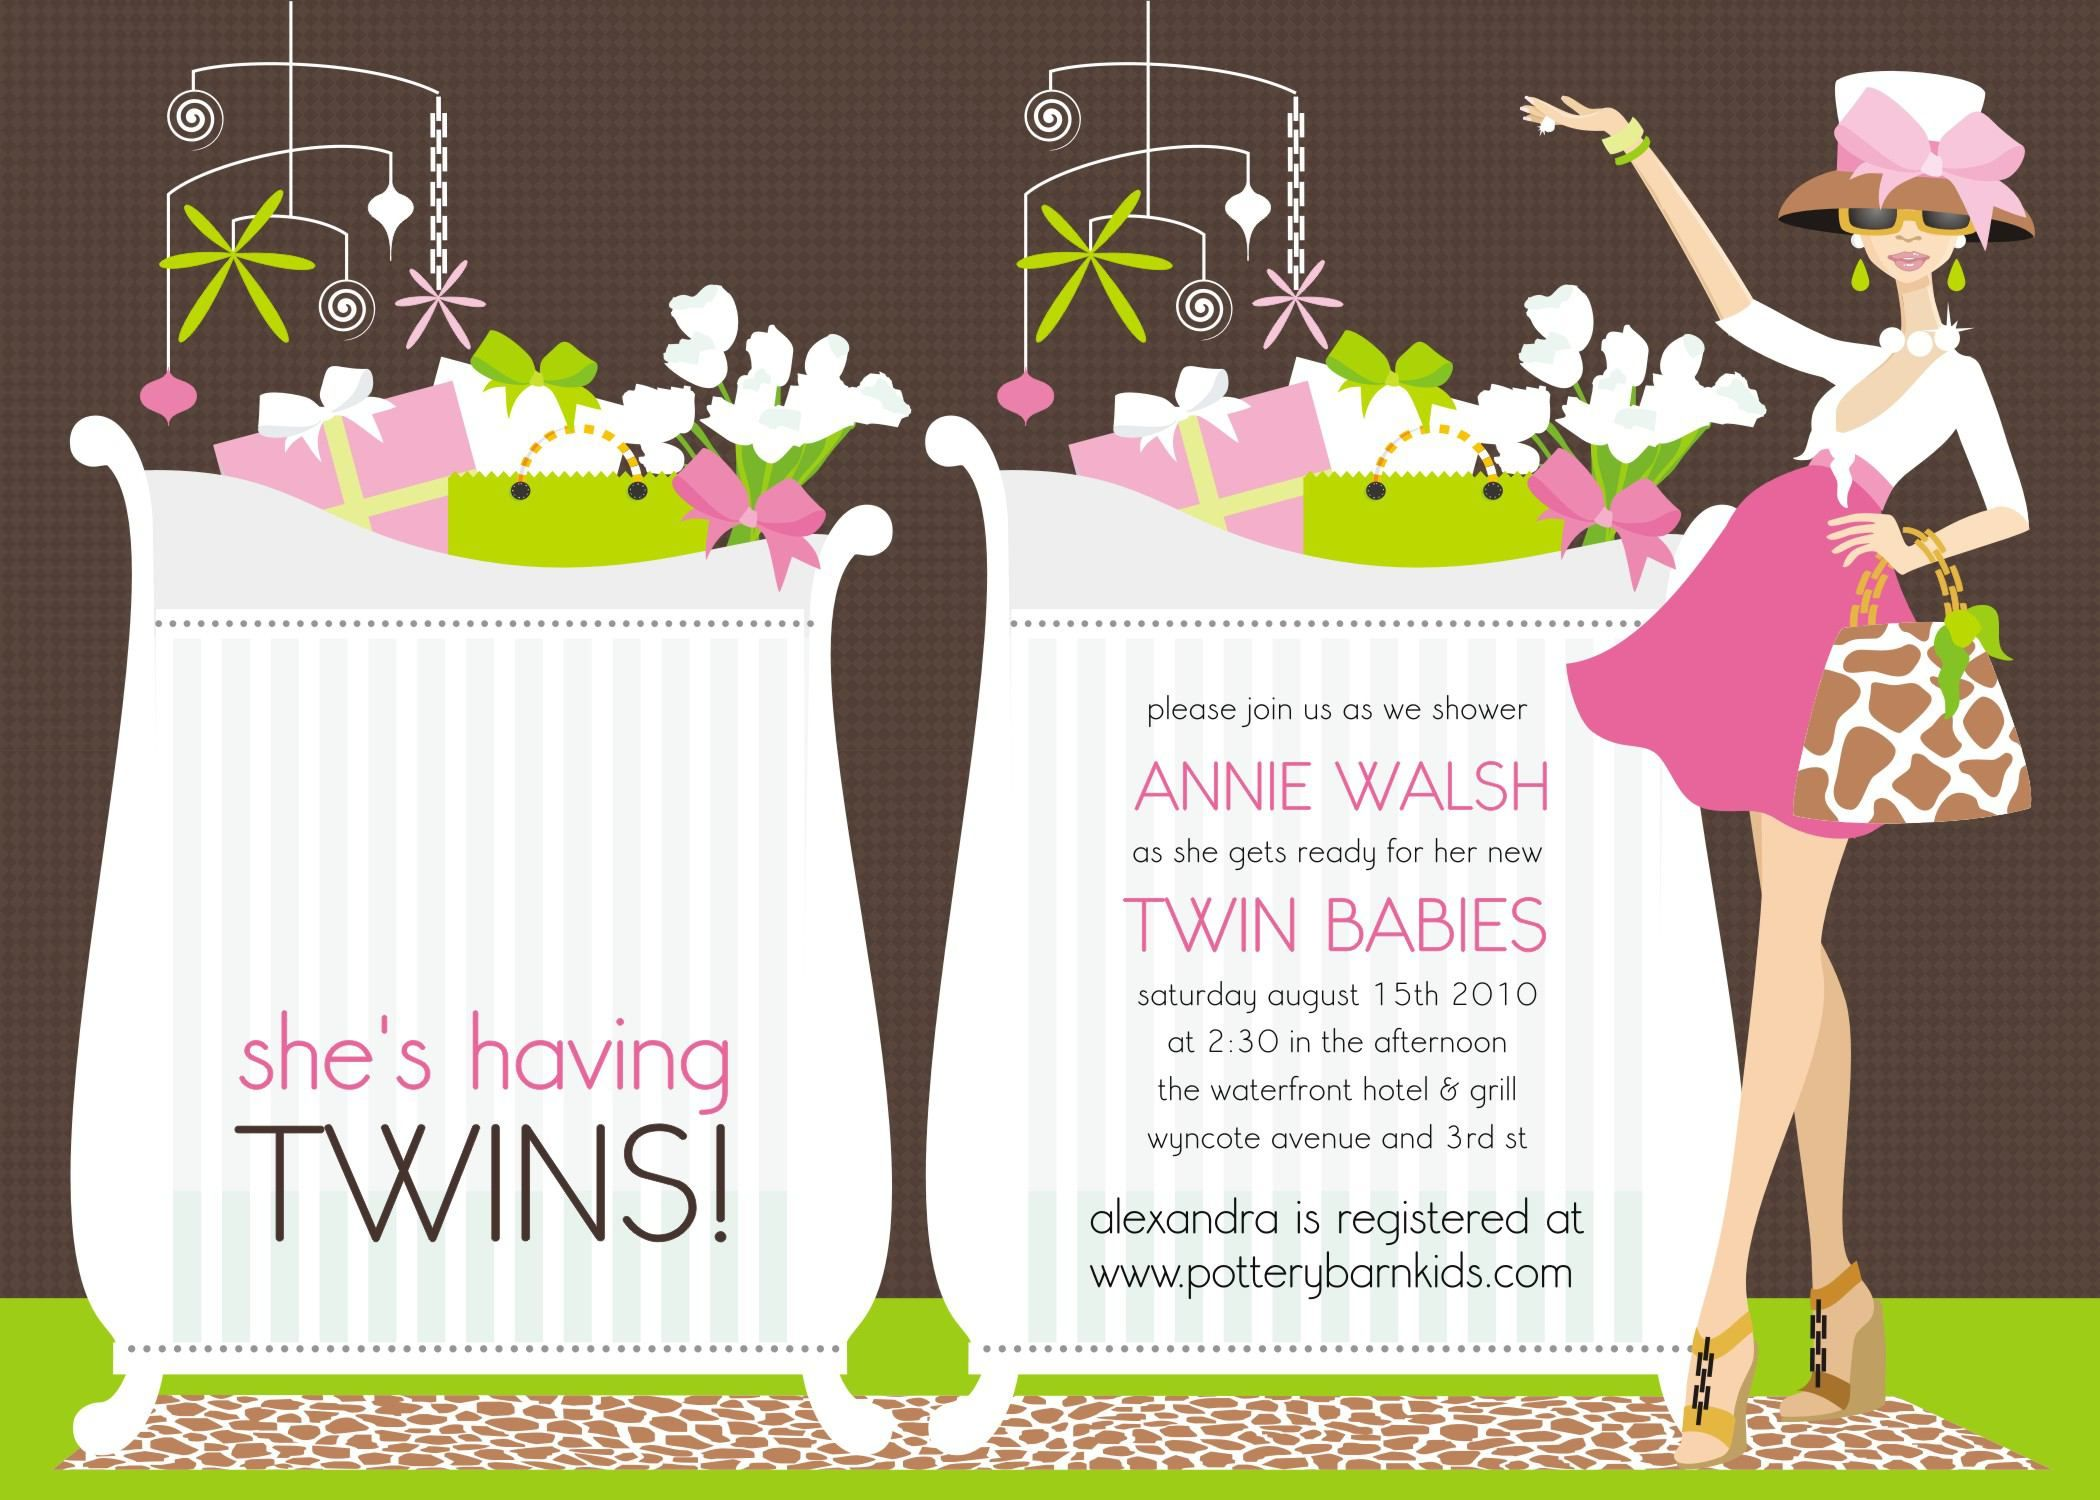 Baby Shower Invitations For Twins Templates | ash\'s baby shower ...